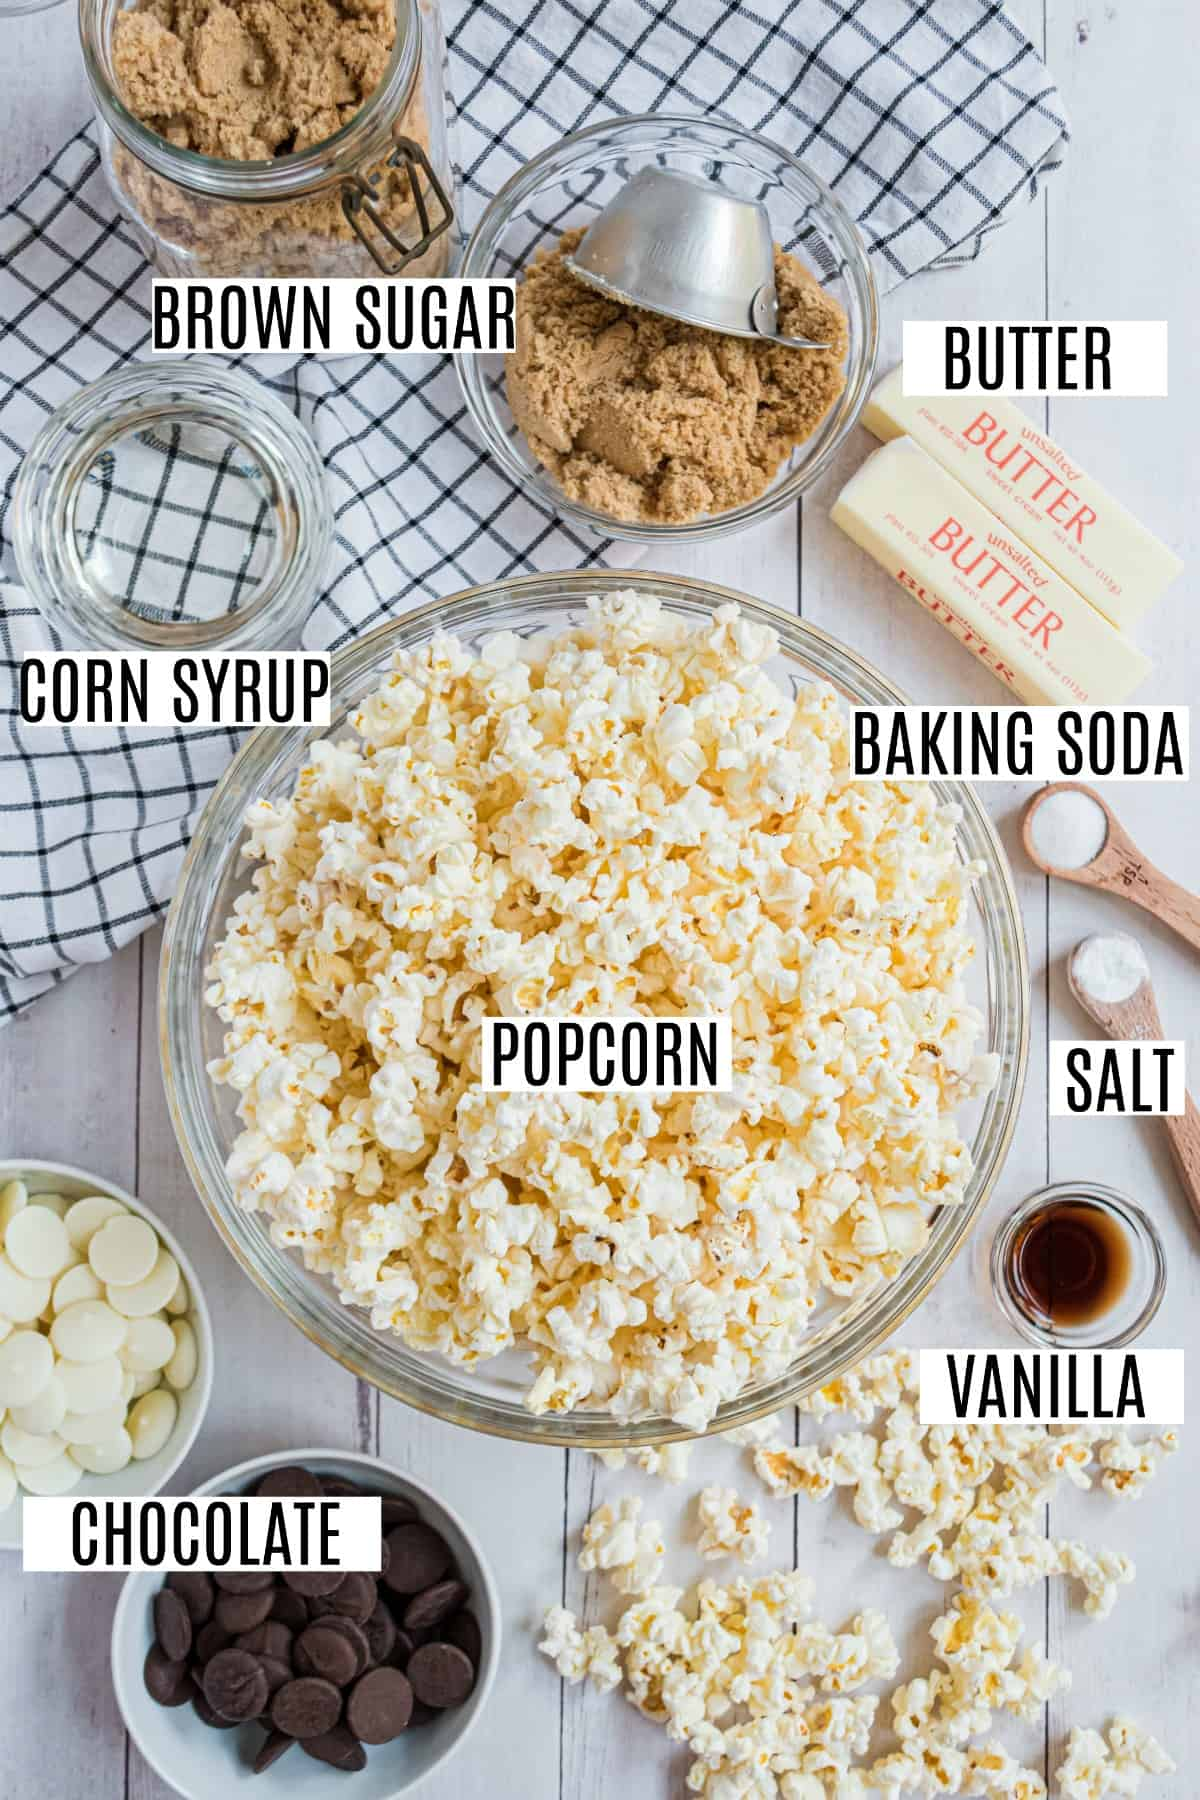 Ingredients needed for homemade chocolate covered caramel corn.